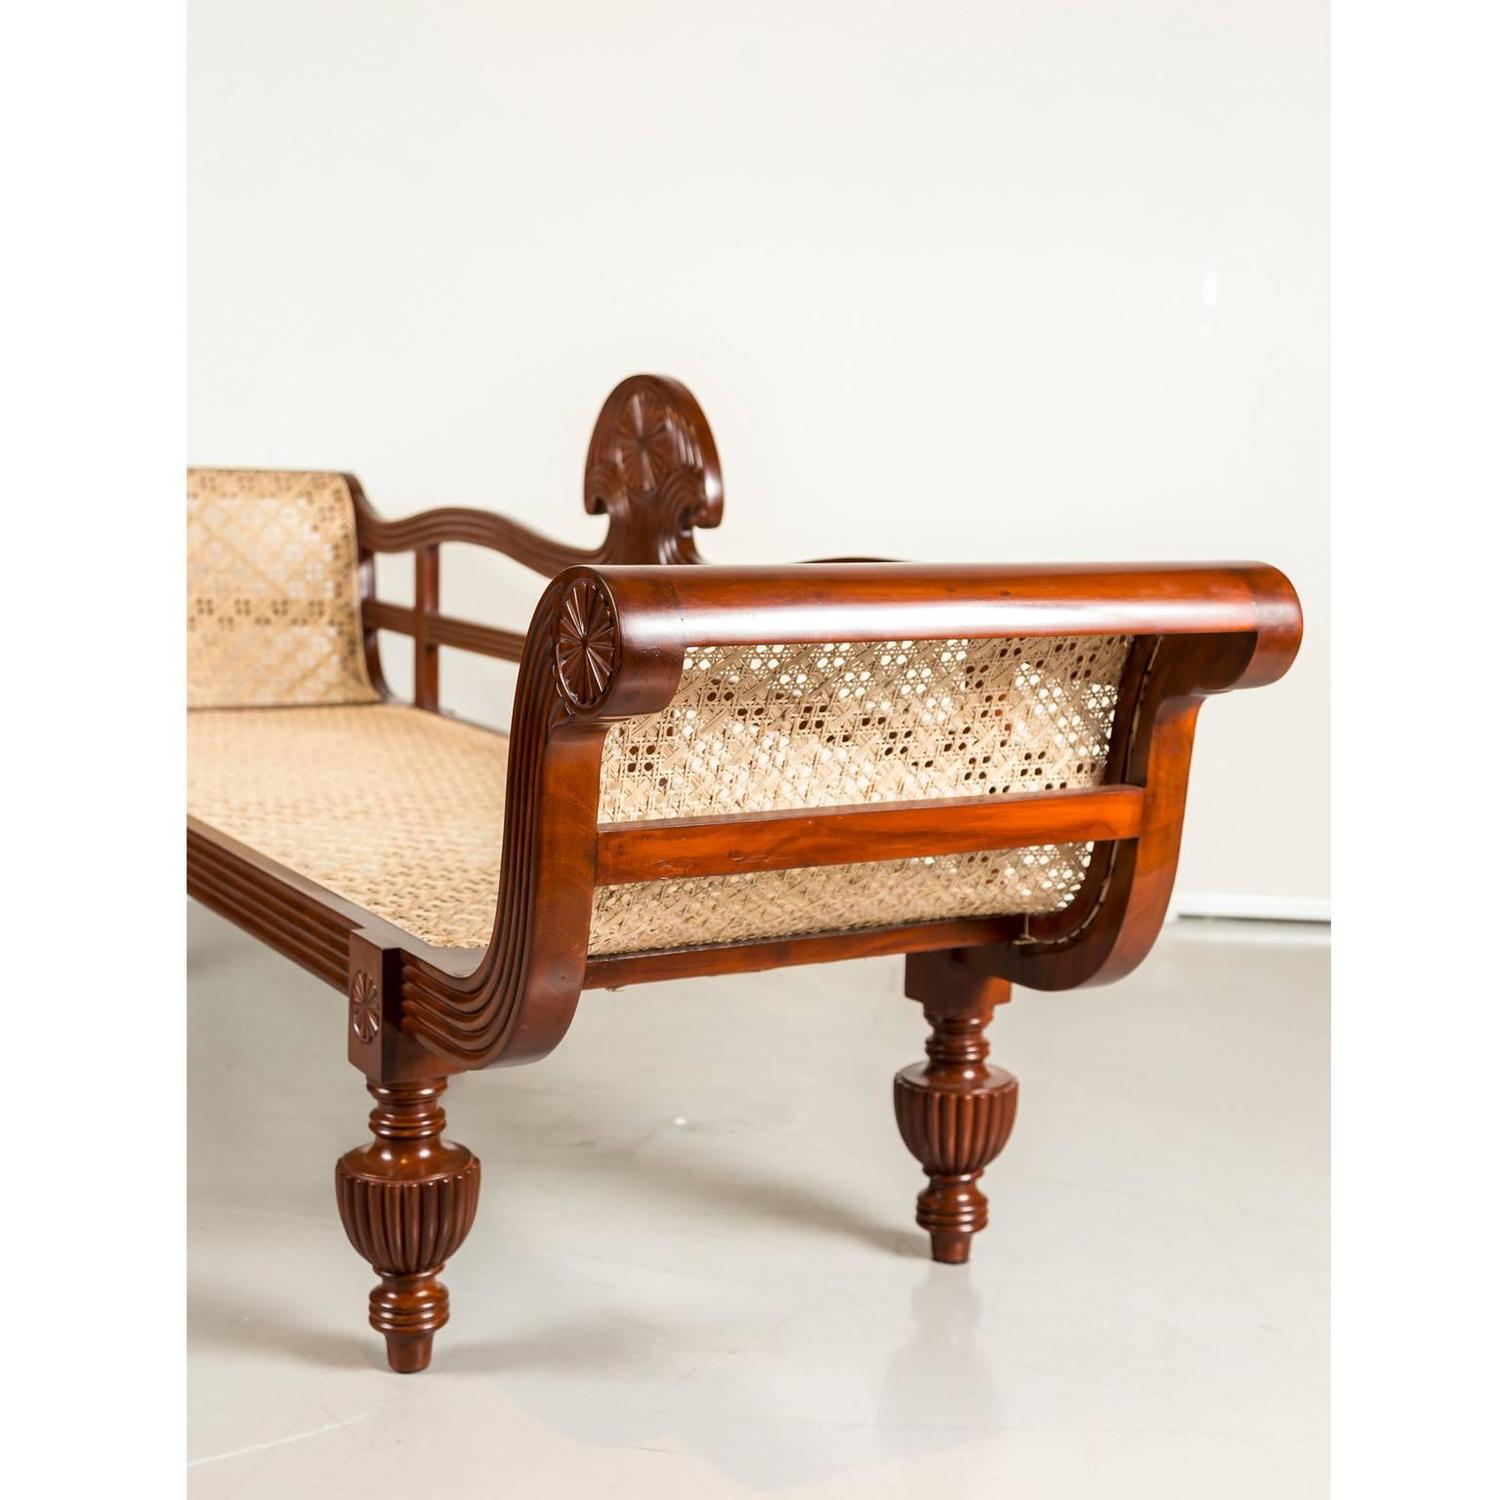 antique anglo indian or british colonial mahogany sofa for sale at 1stdibs. Black Bedroom Furniture Sets. Home Design Ideas